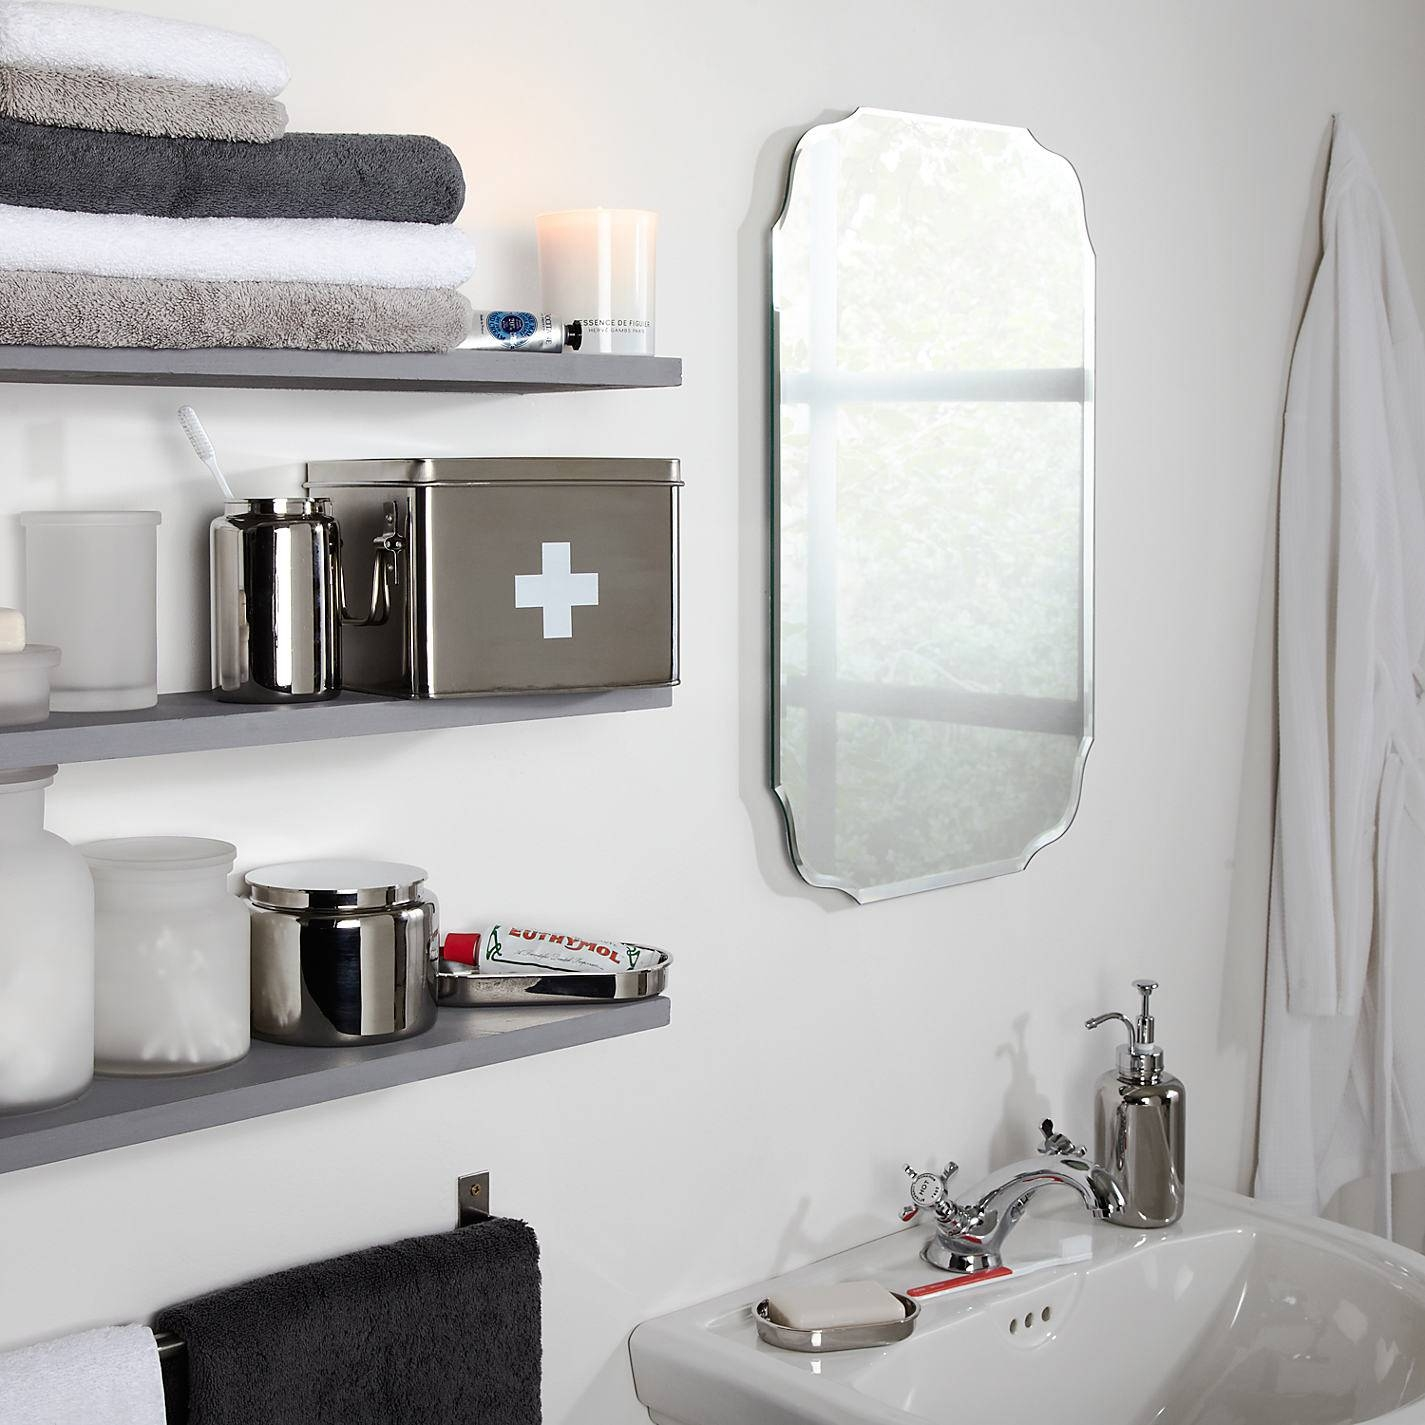 Fresh Inspiration Old Fashioned Bathroom Mirrors The Vintage pertaining to Vintage Bathroom Mirrors (Image 10 of 15)